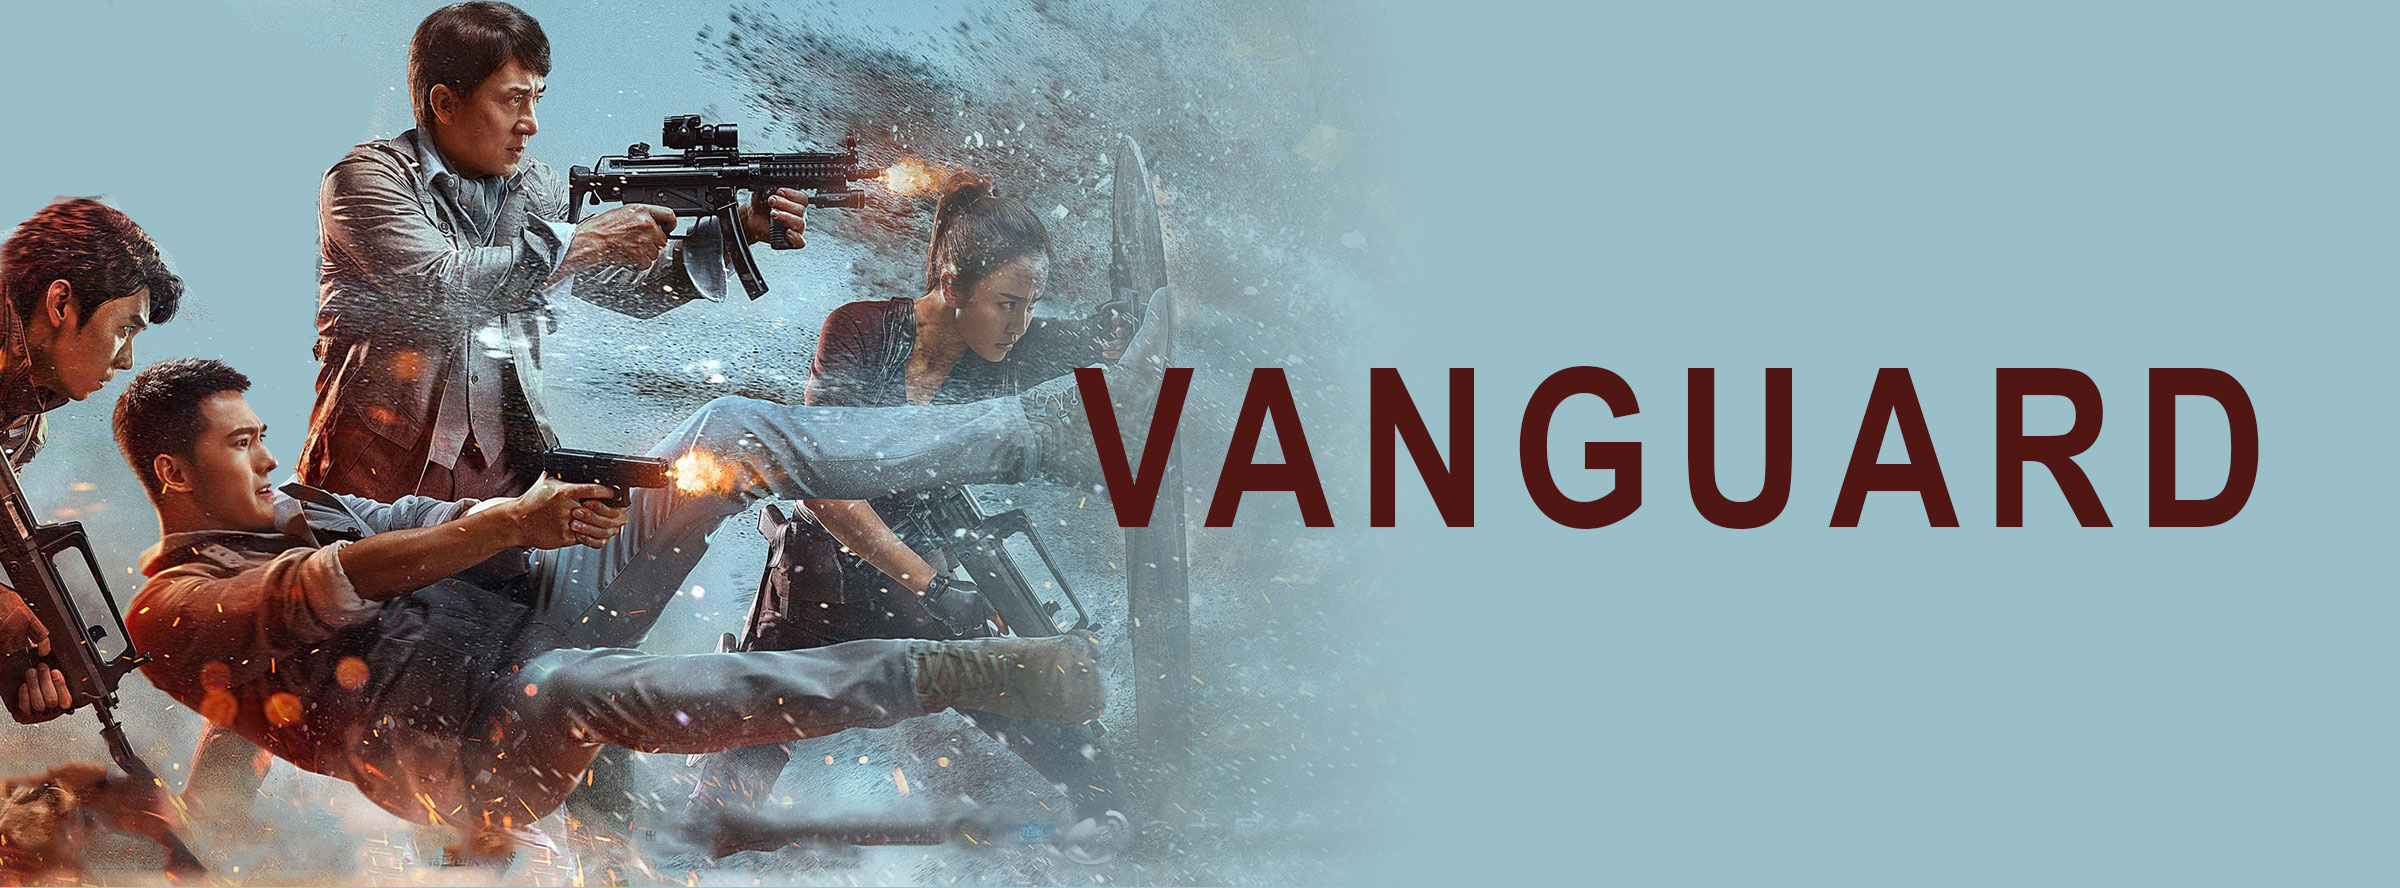 Slider Image for Vanguard